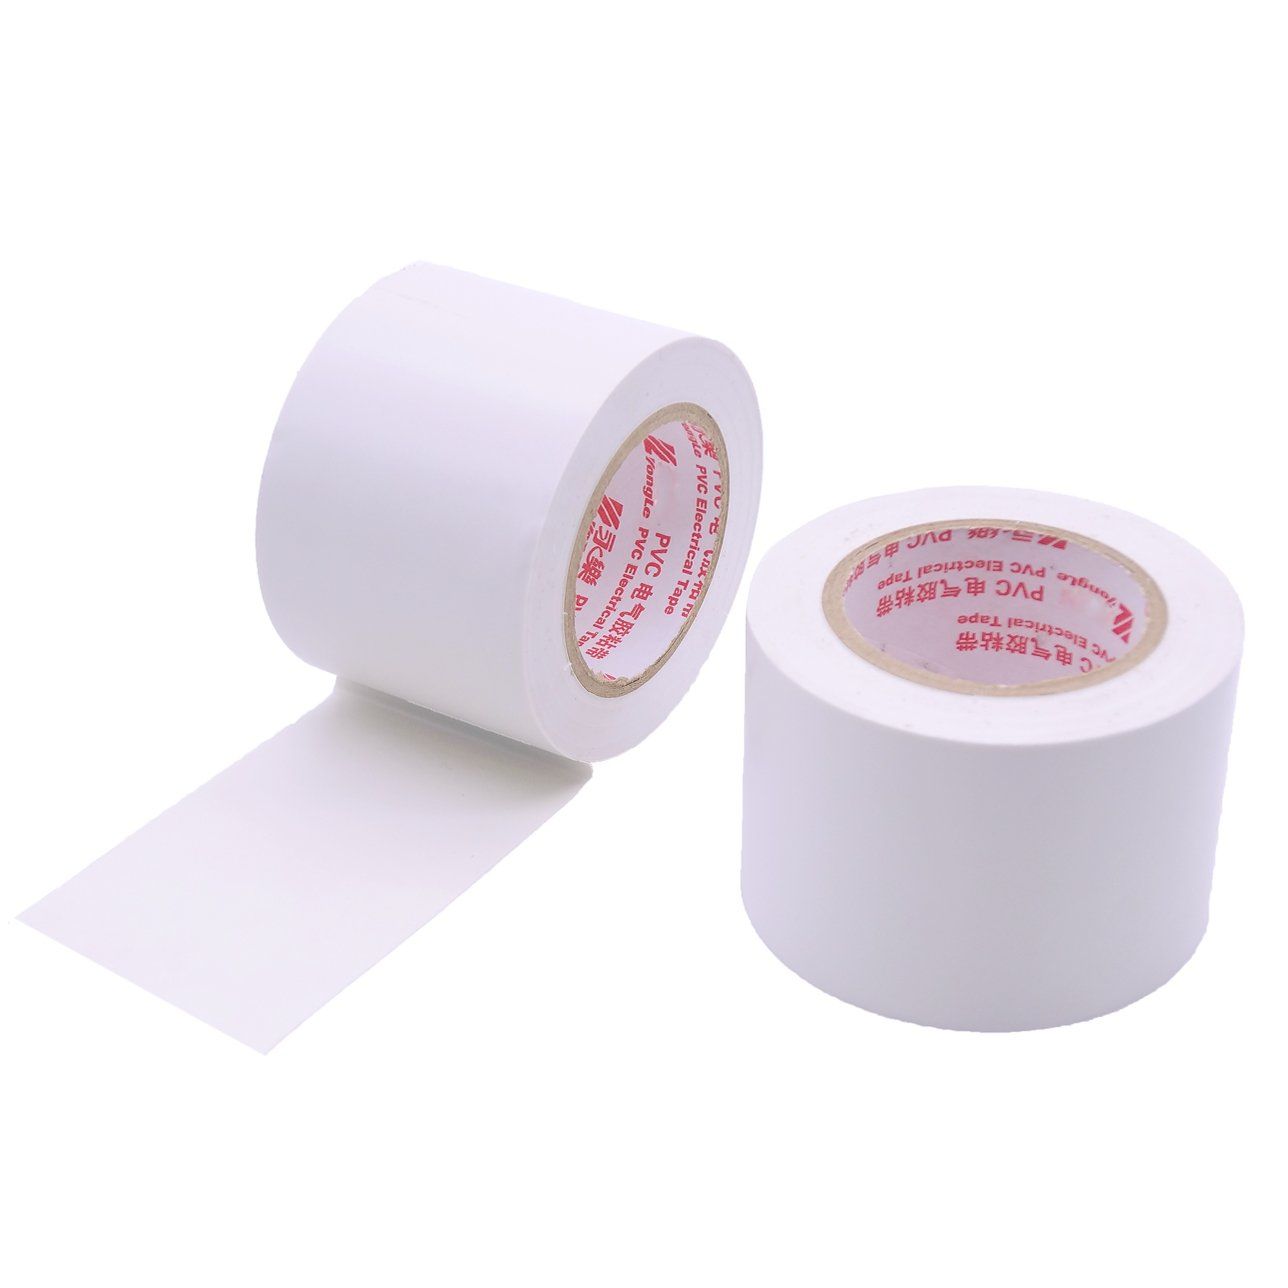 10 Rolls White PVC Electrical Insulation Tapes-Maveek High End Industrial Grade